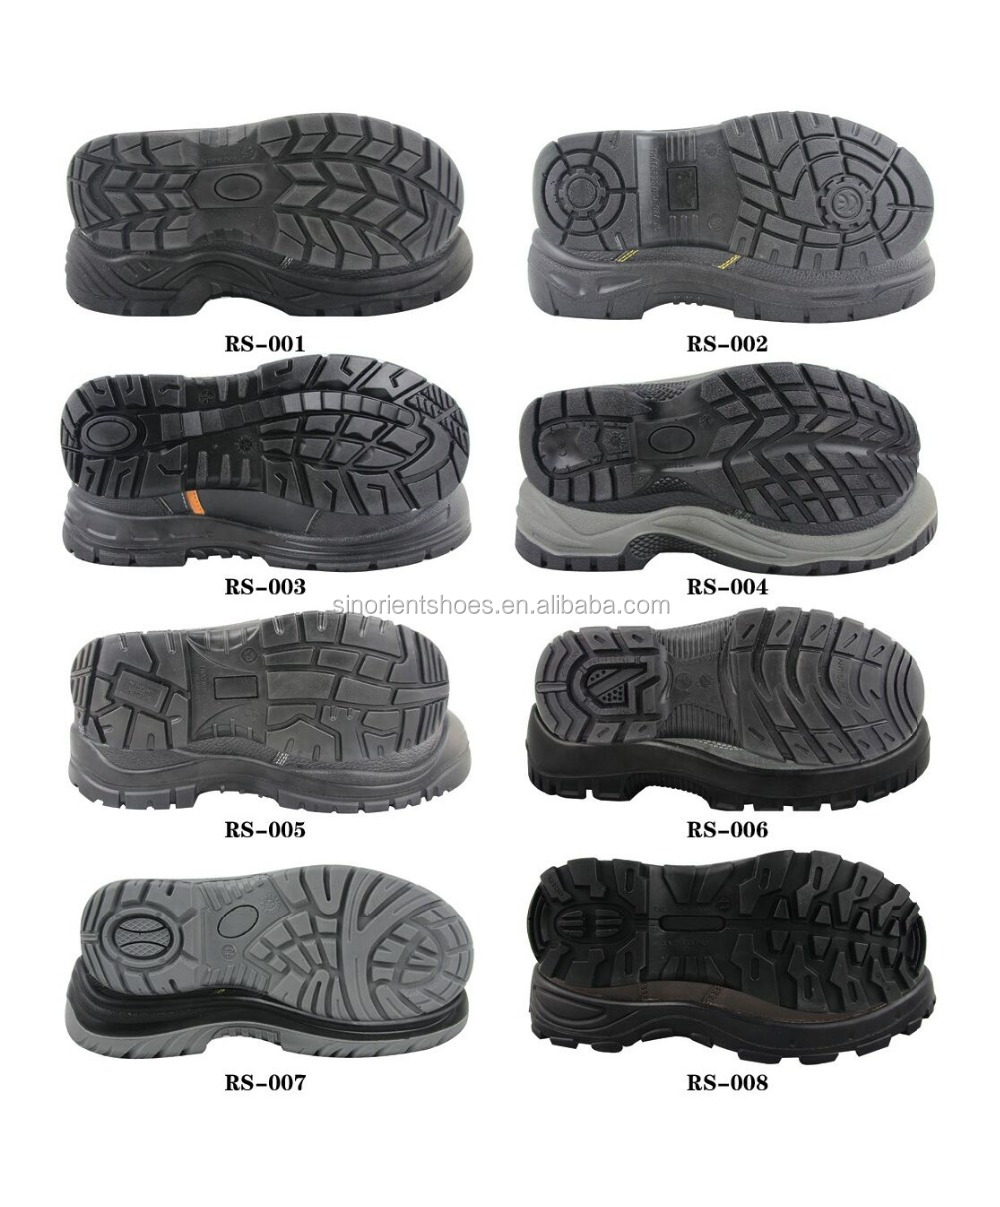 Energy Absorption Sport style No lace Deltaplus safety shoes ,Toe protection ,Puncture resistant PU sole Outdoor Shoes RS573